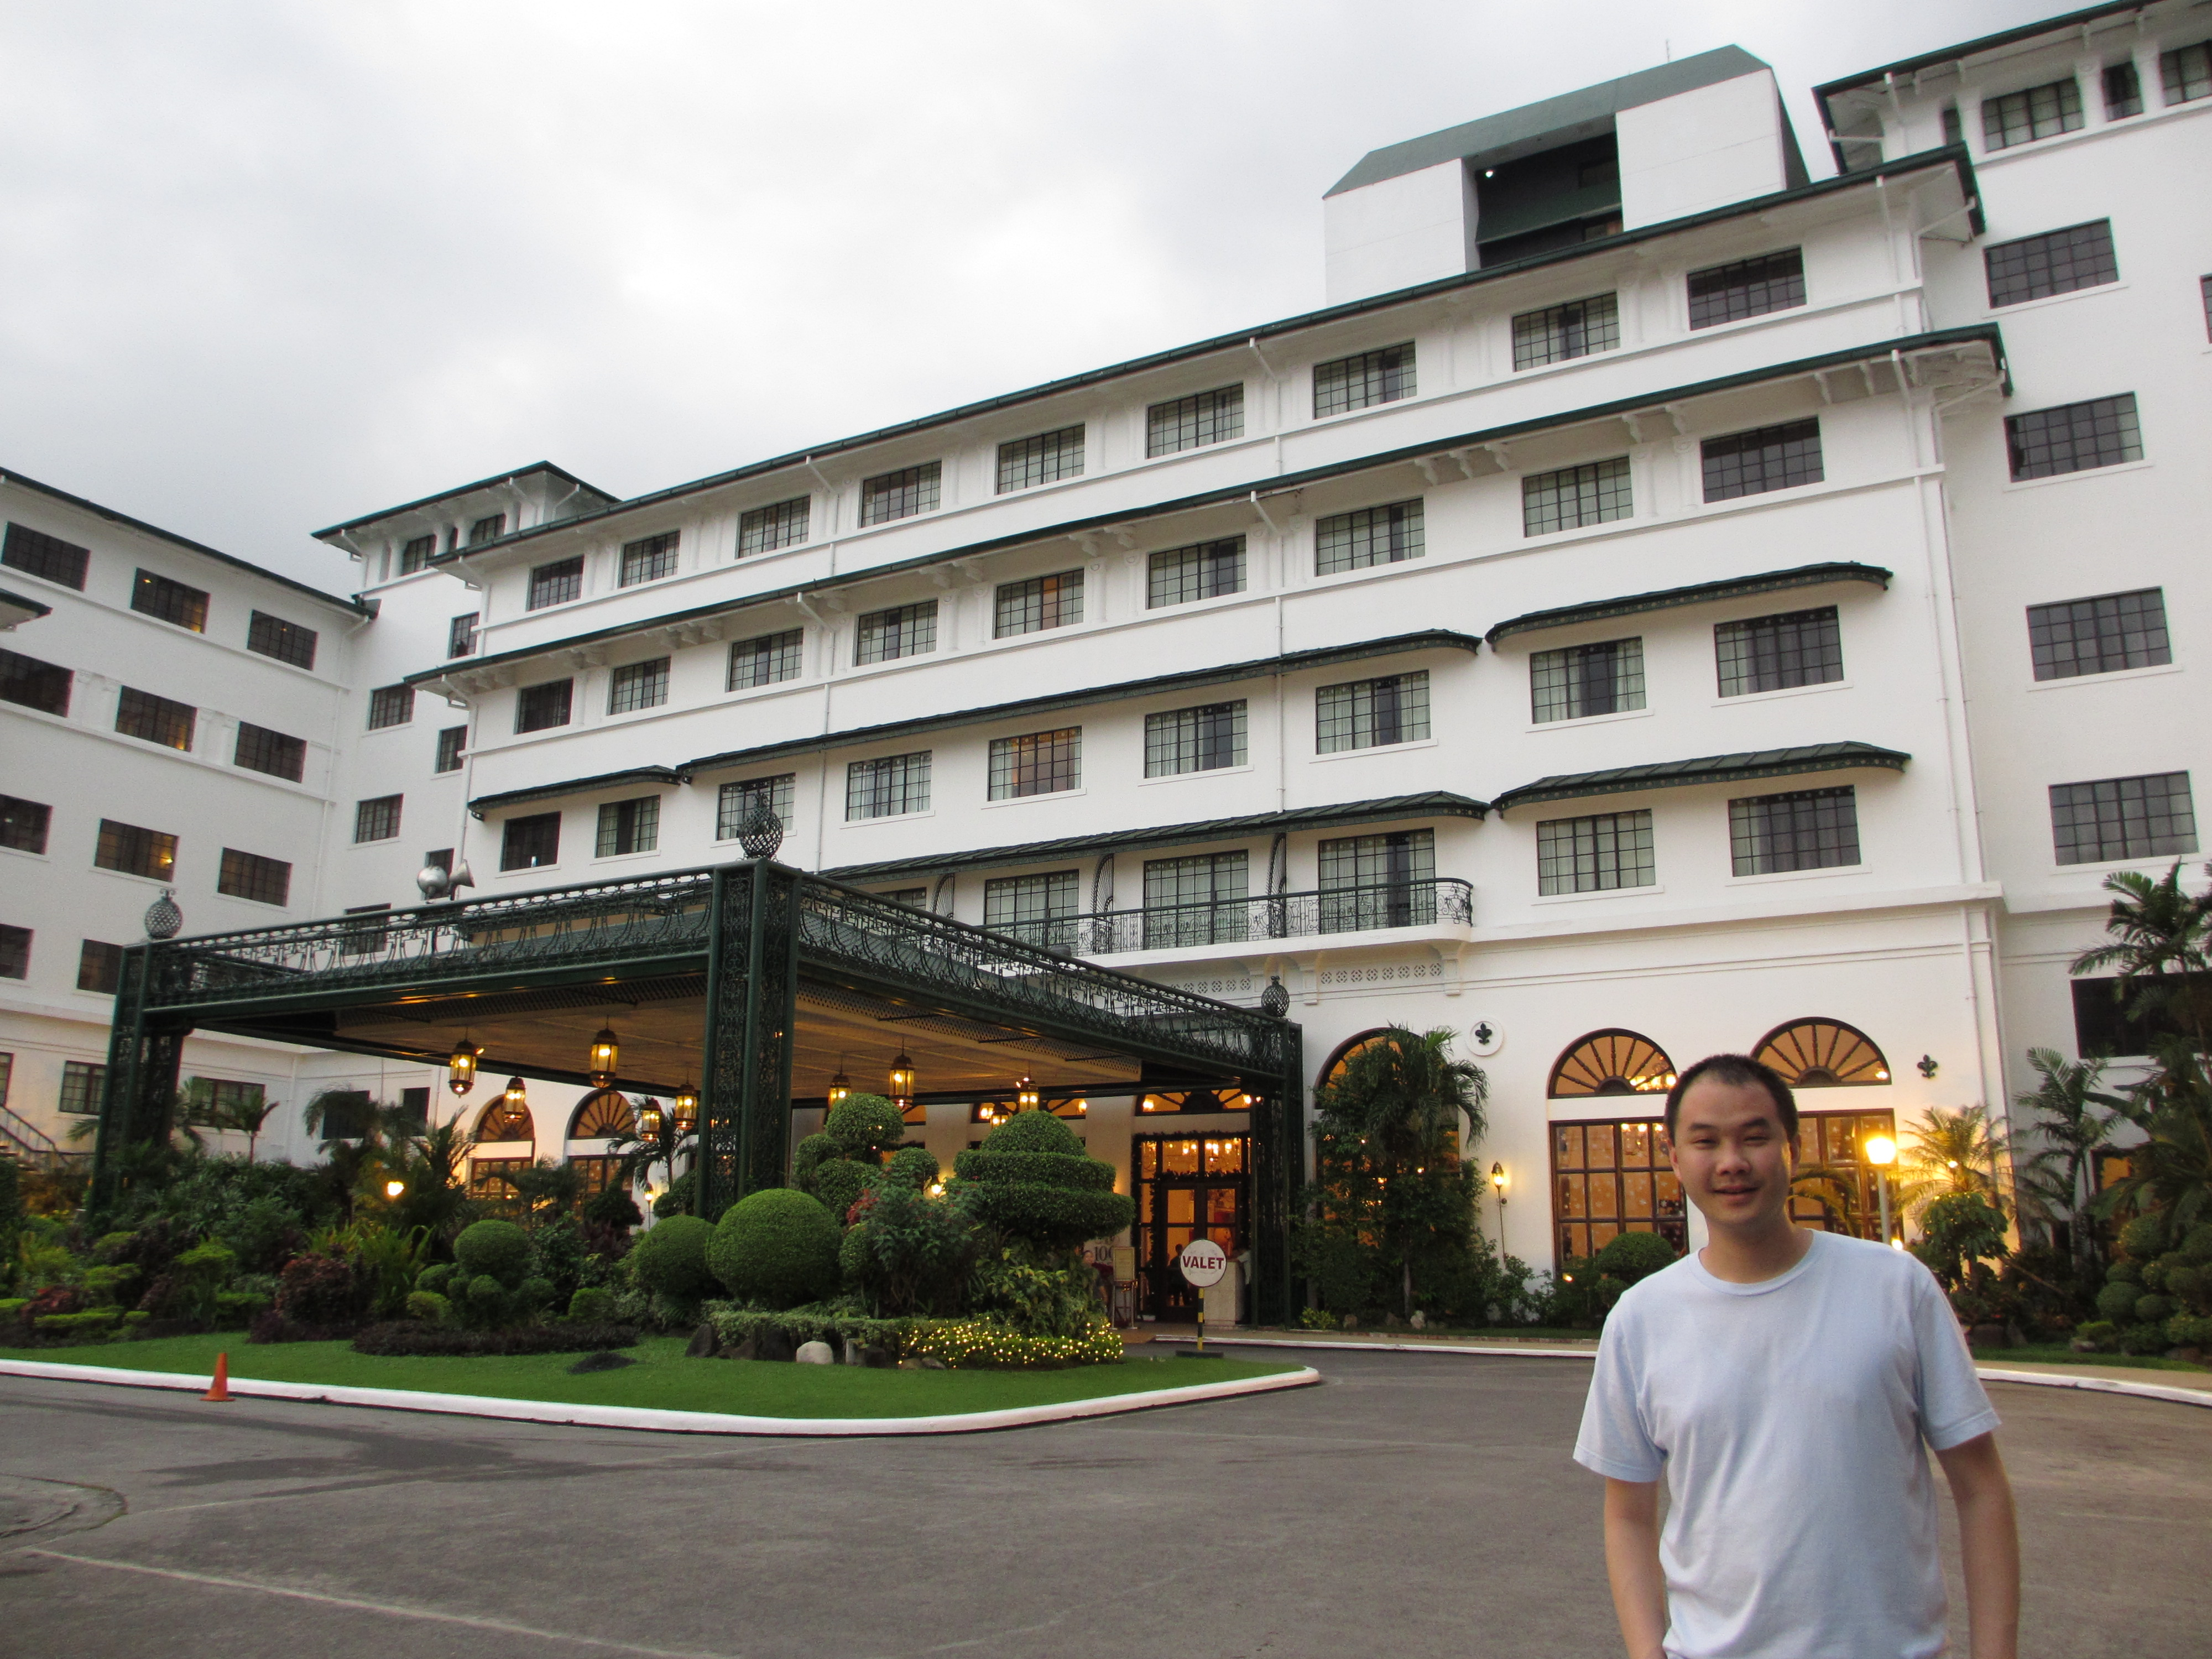 Our stay at the historic Manila Hotel